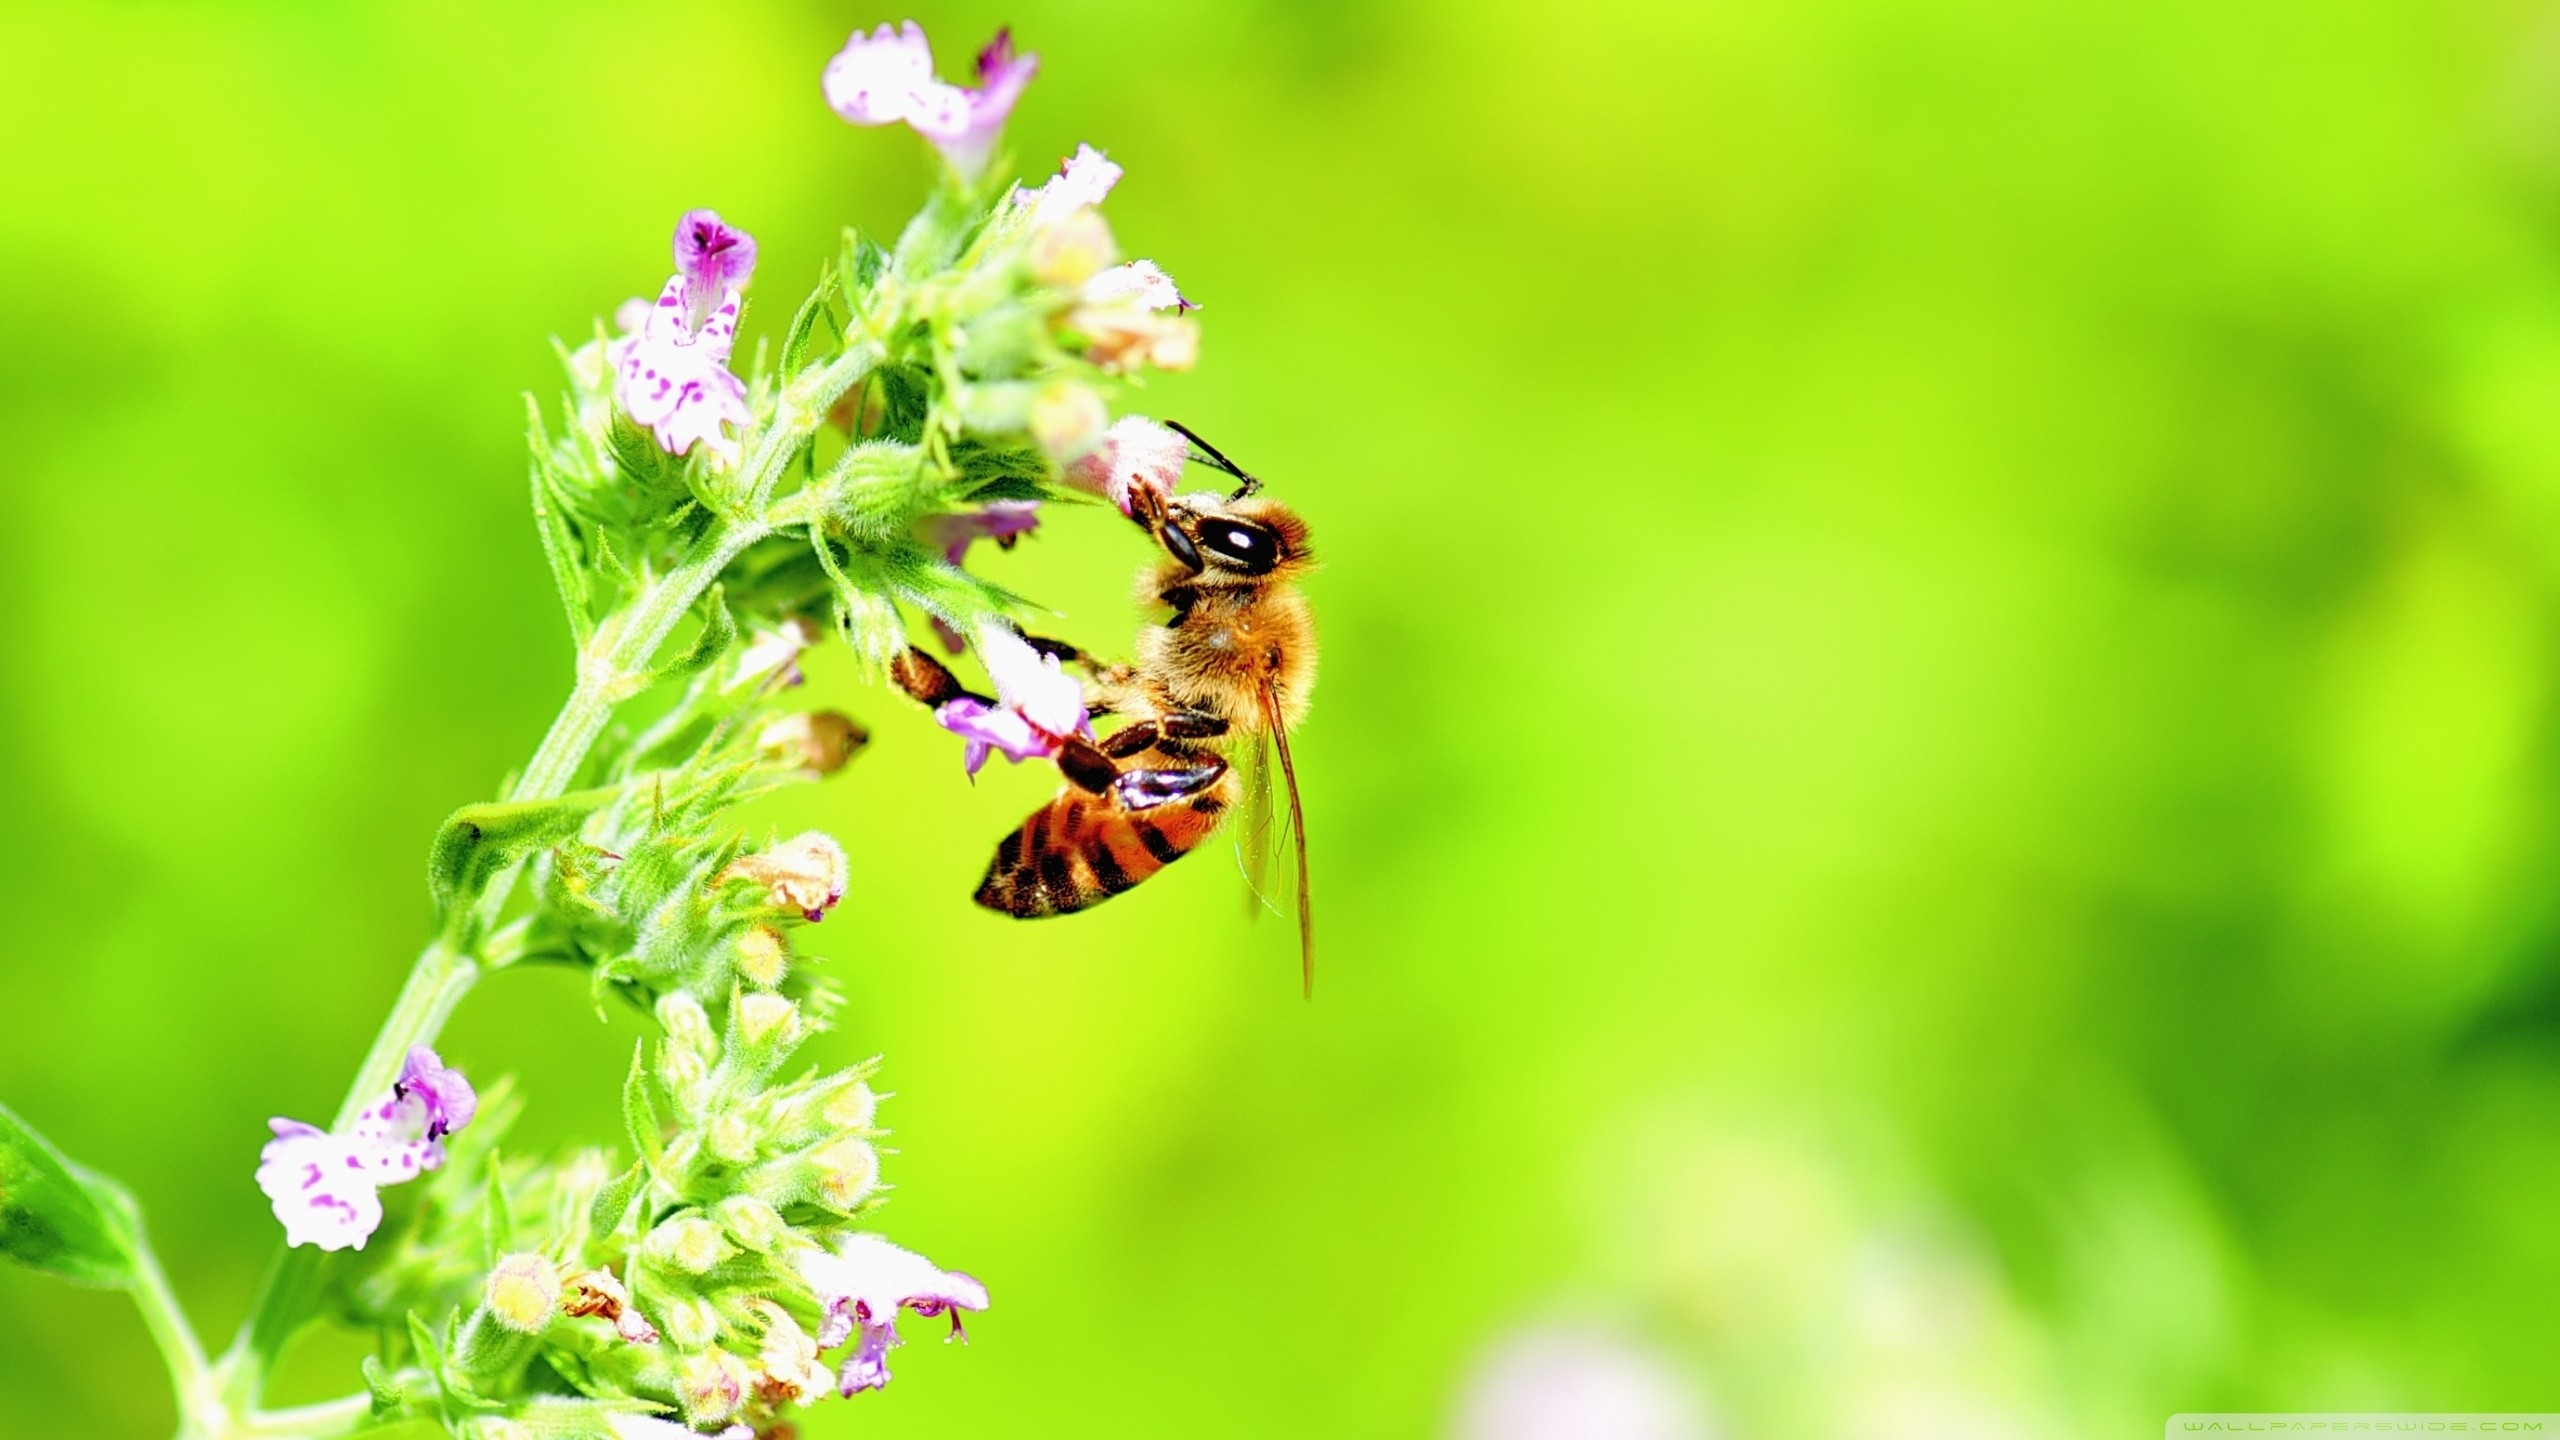 2560x1440 The Most Beautiful Honey Bee, Bright Green Background Wallpaper